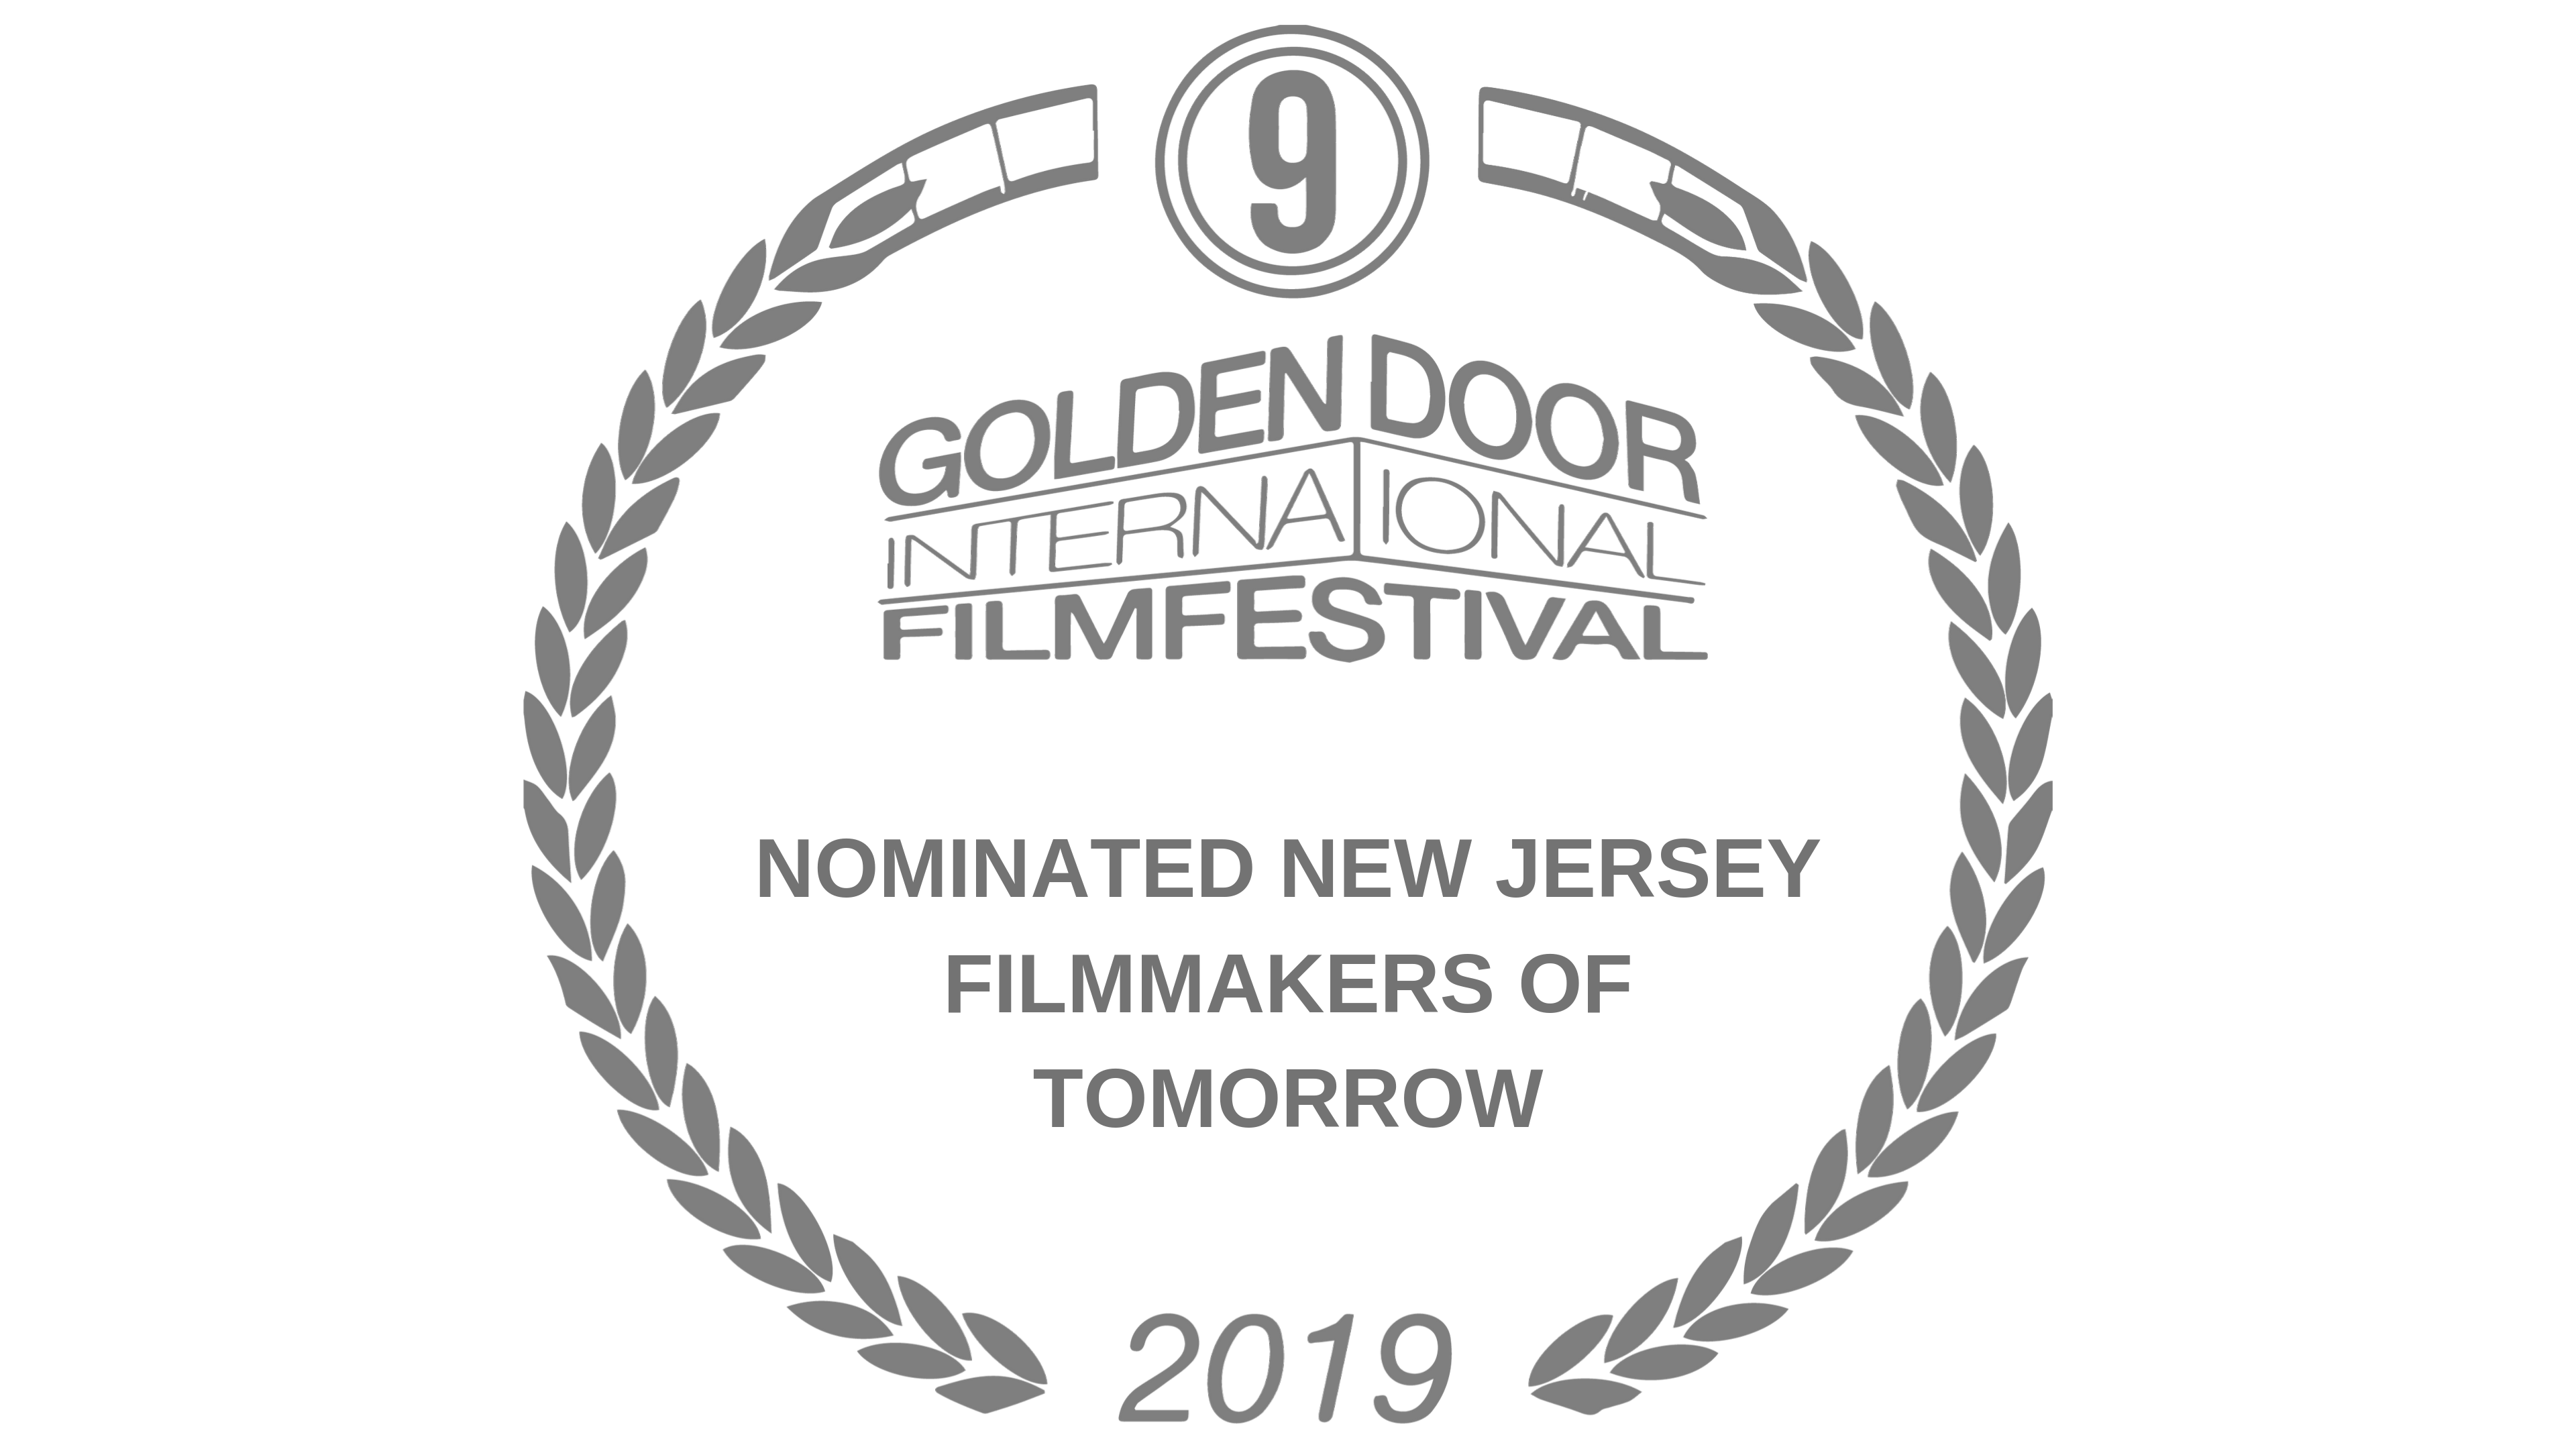 20191004A - New Jersey Filmmakers Of Tomorrow - Awards Only - GDIFF - LIKE US Movie - FSPAP - THISLEARNING